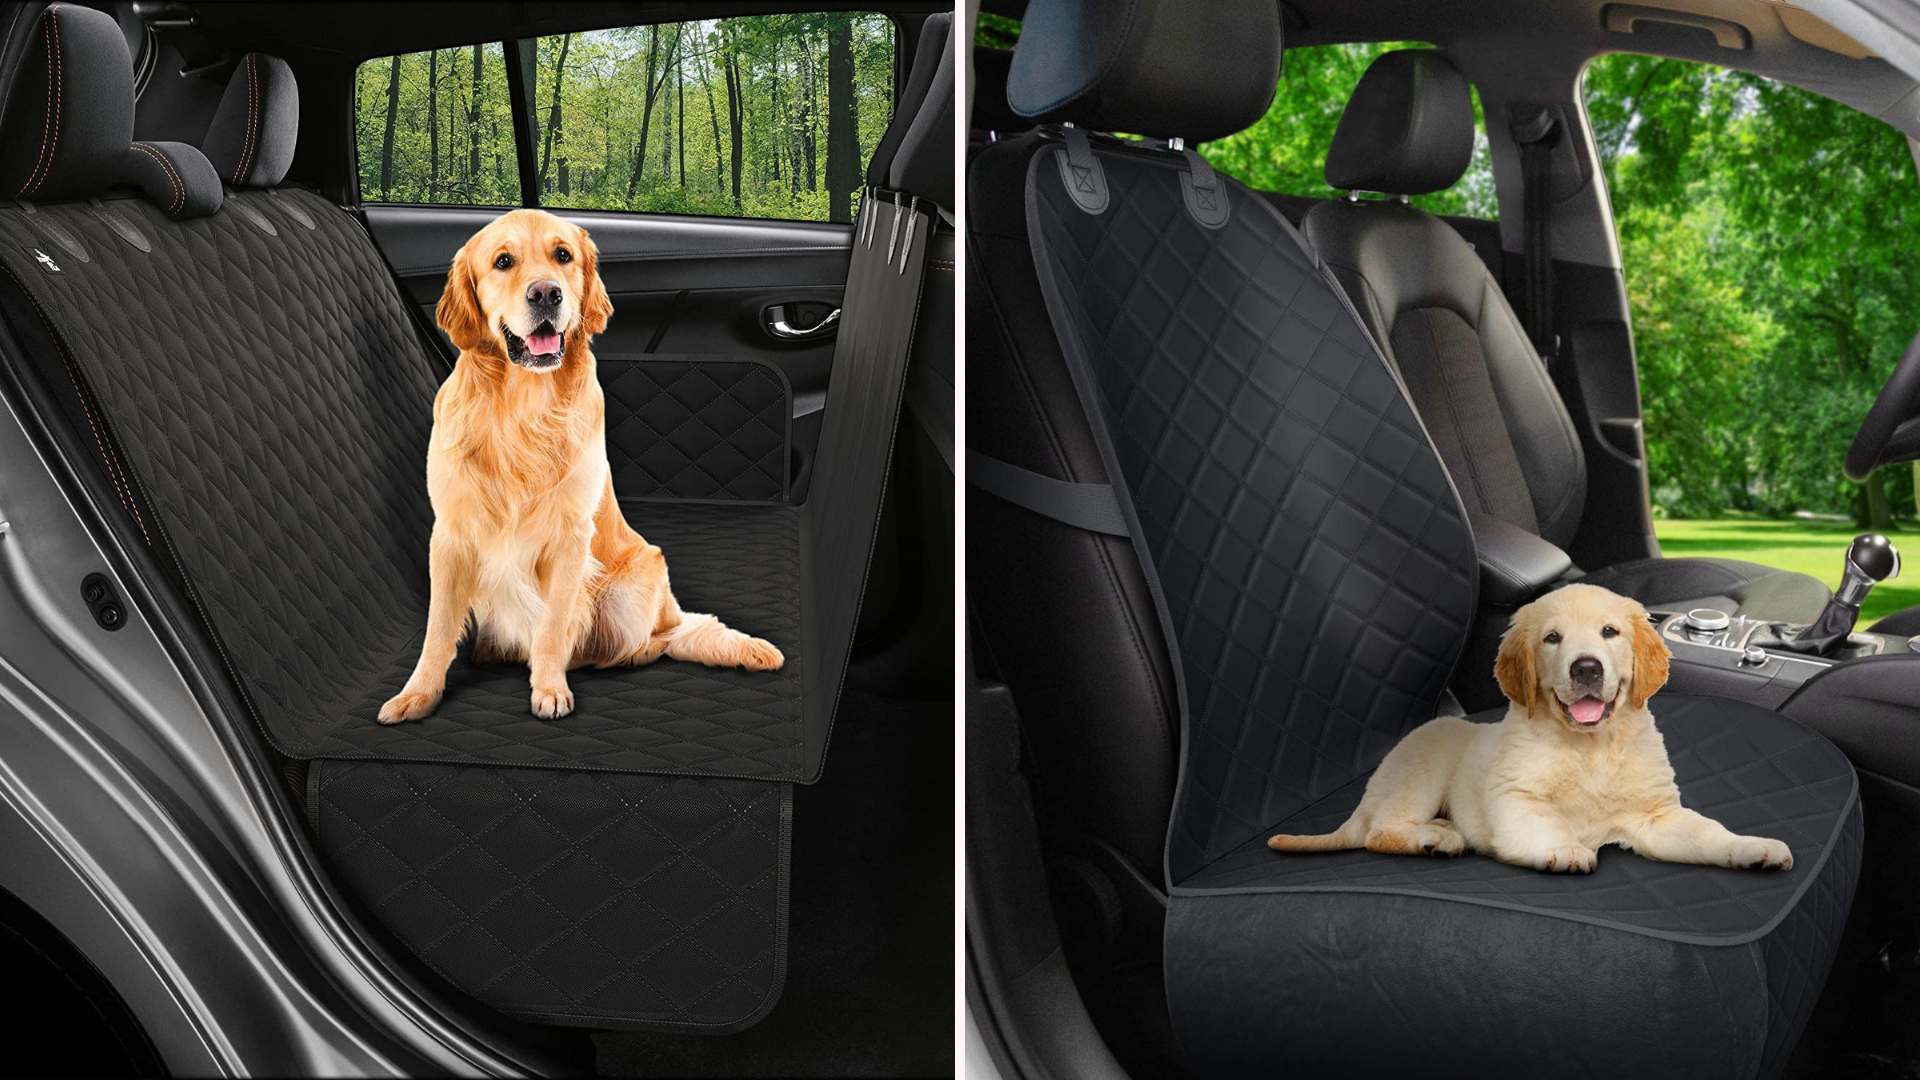 On left, labrador sitting happily on backseat car cover; on right, a puppy lying down on seat cover